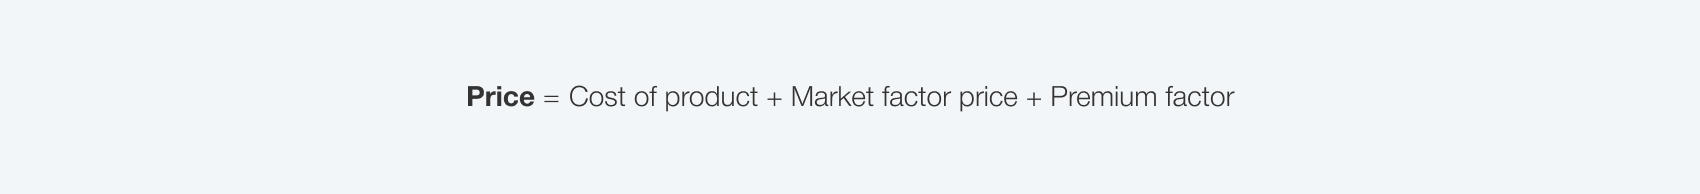 market-based-pricing-formula